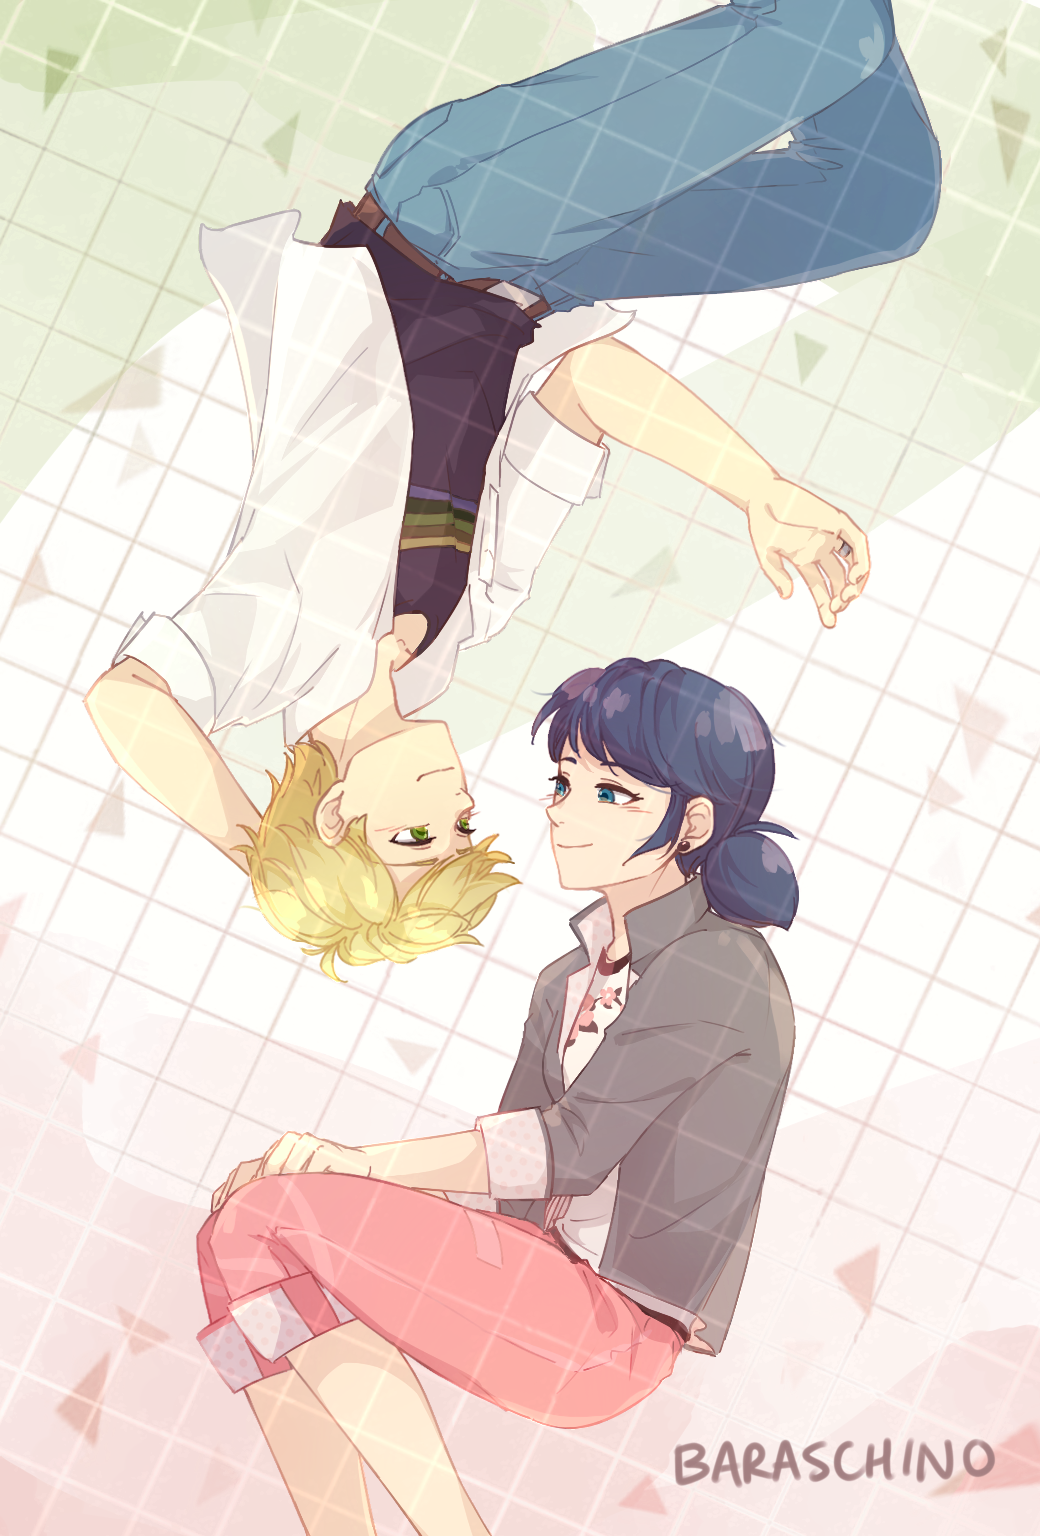 """baraschino: """"something for adrinette month before it ends (◡‿◡✿) """""""